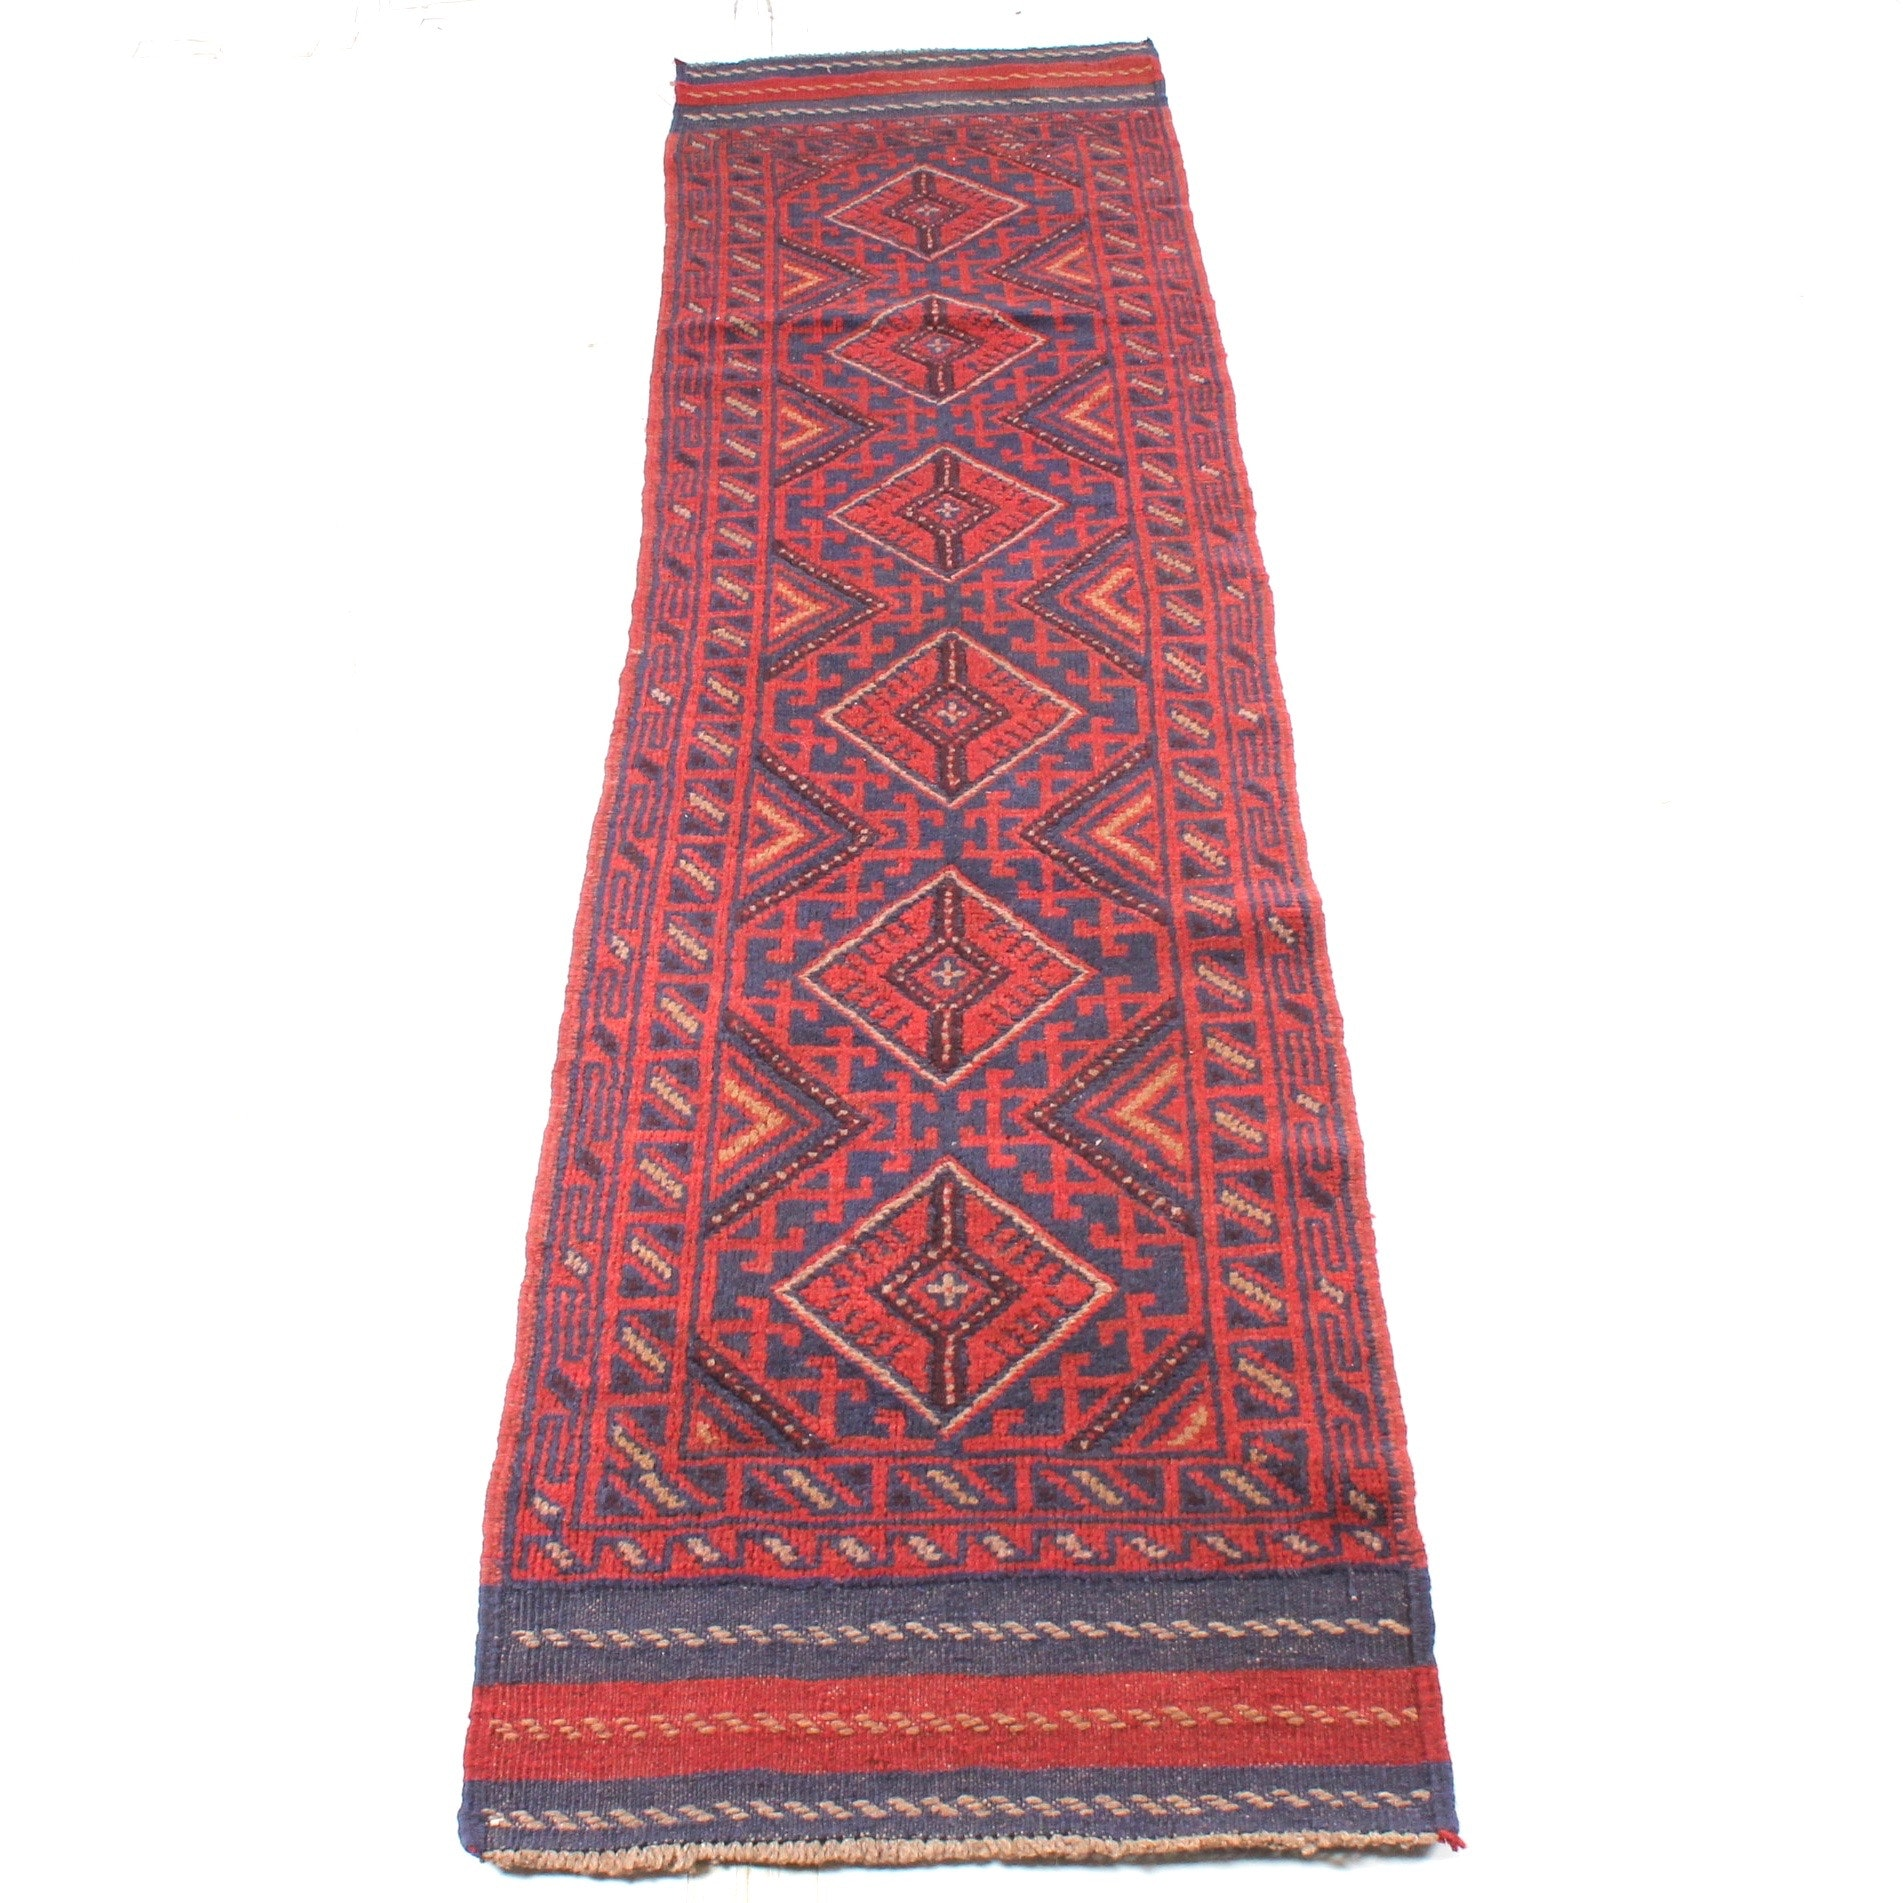 2' x 8' Hand-Knotted Persian Baluch Runner